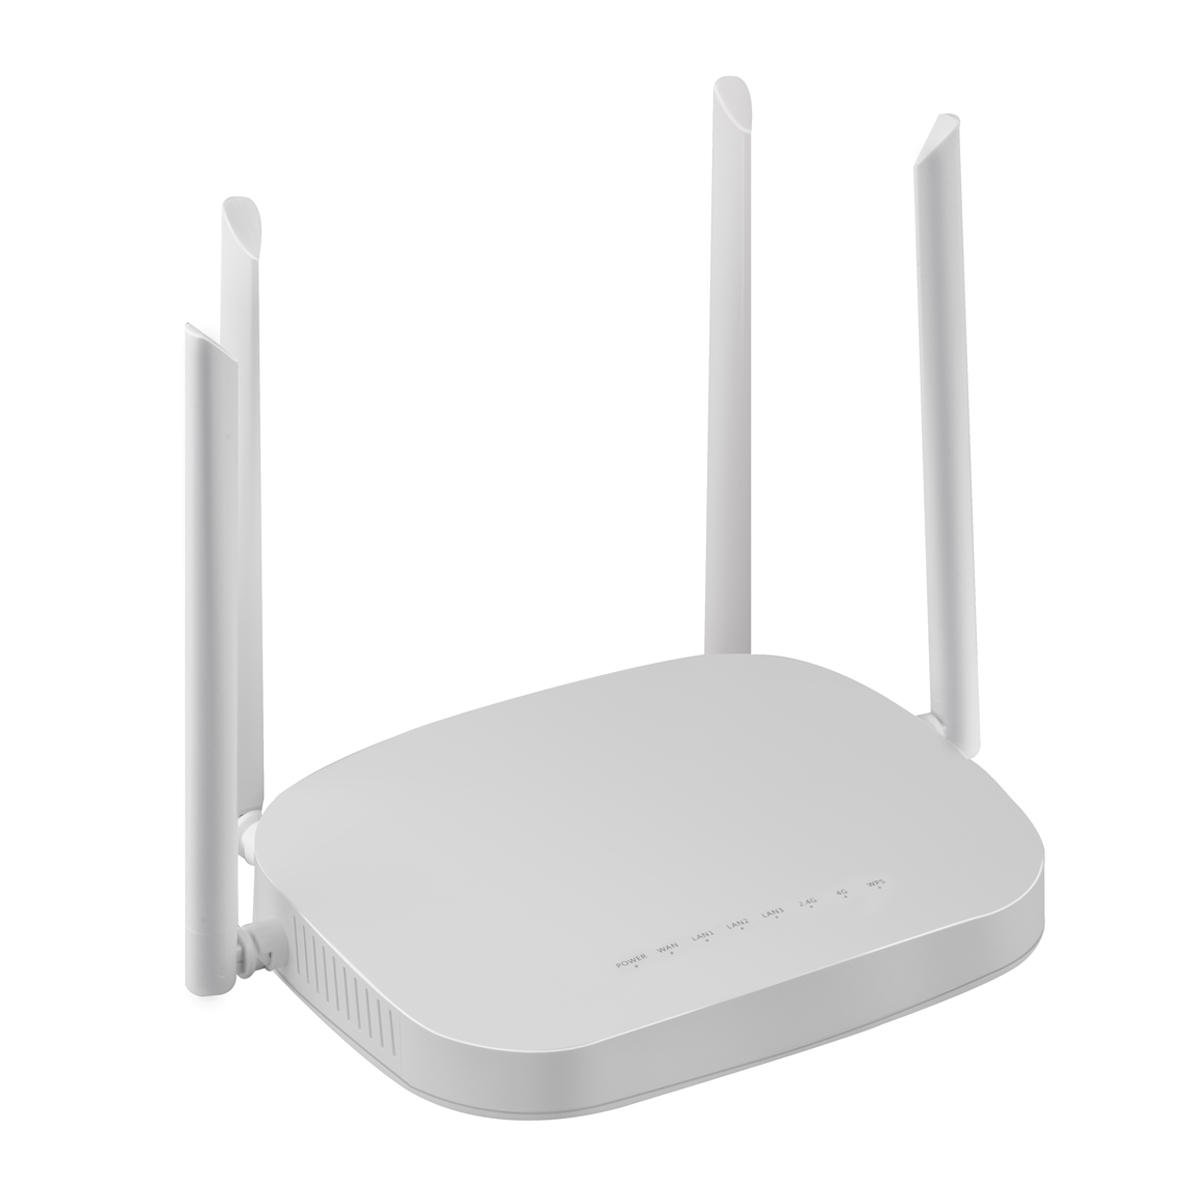 2.4G 300Mbps 4G Wireless Smart Router W// 4 Antenna SIM WiFi Range Extender EU